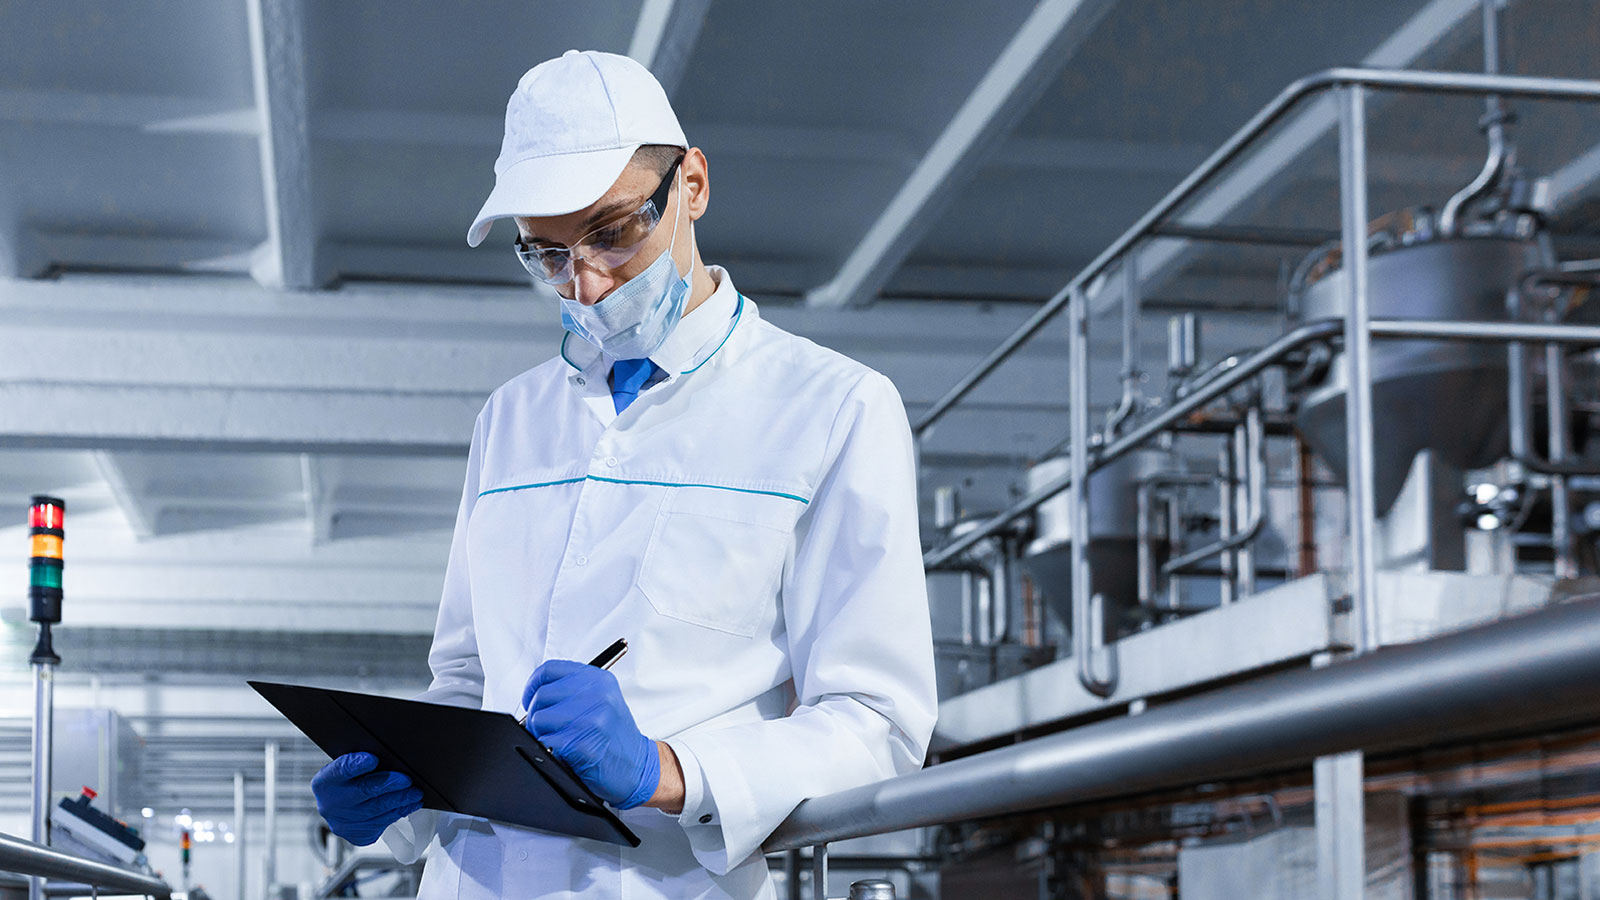 Man making notes in a sterile production